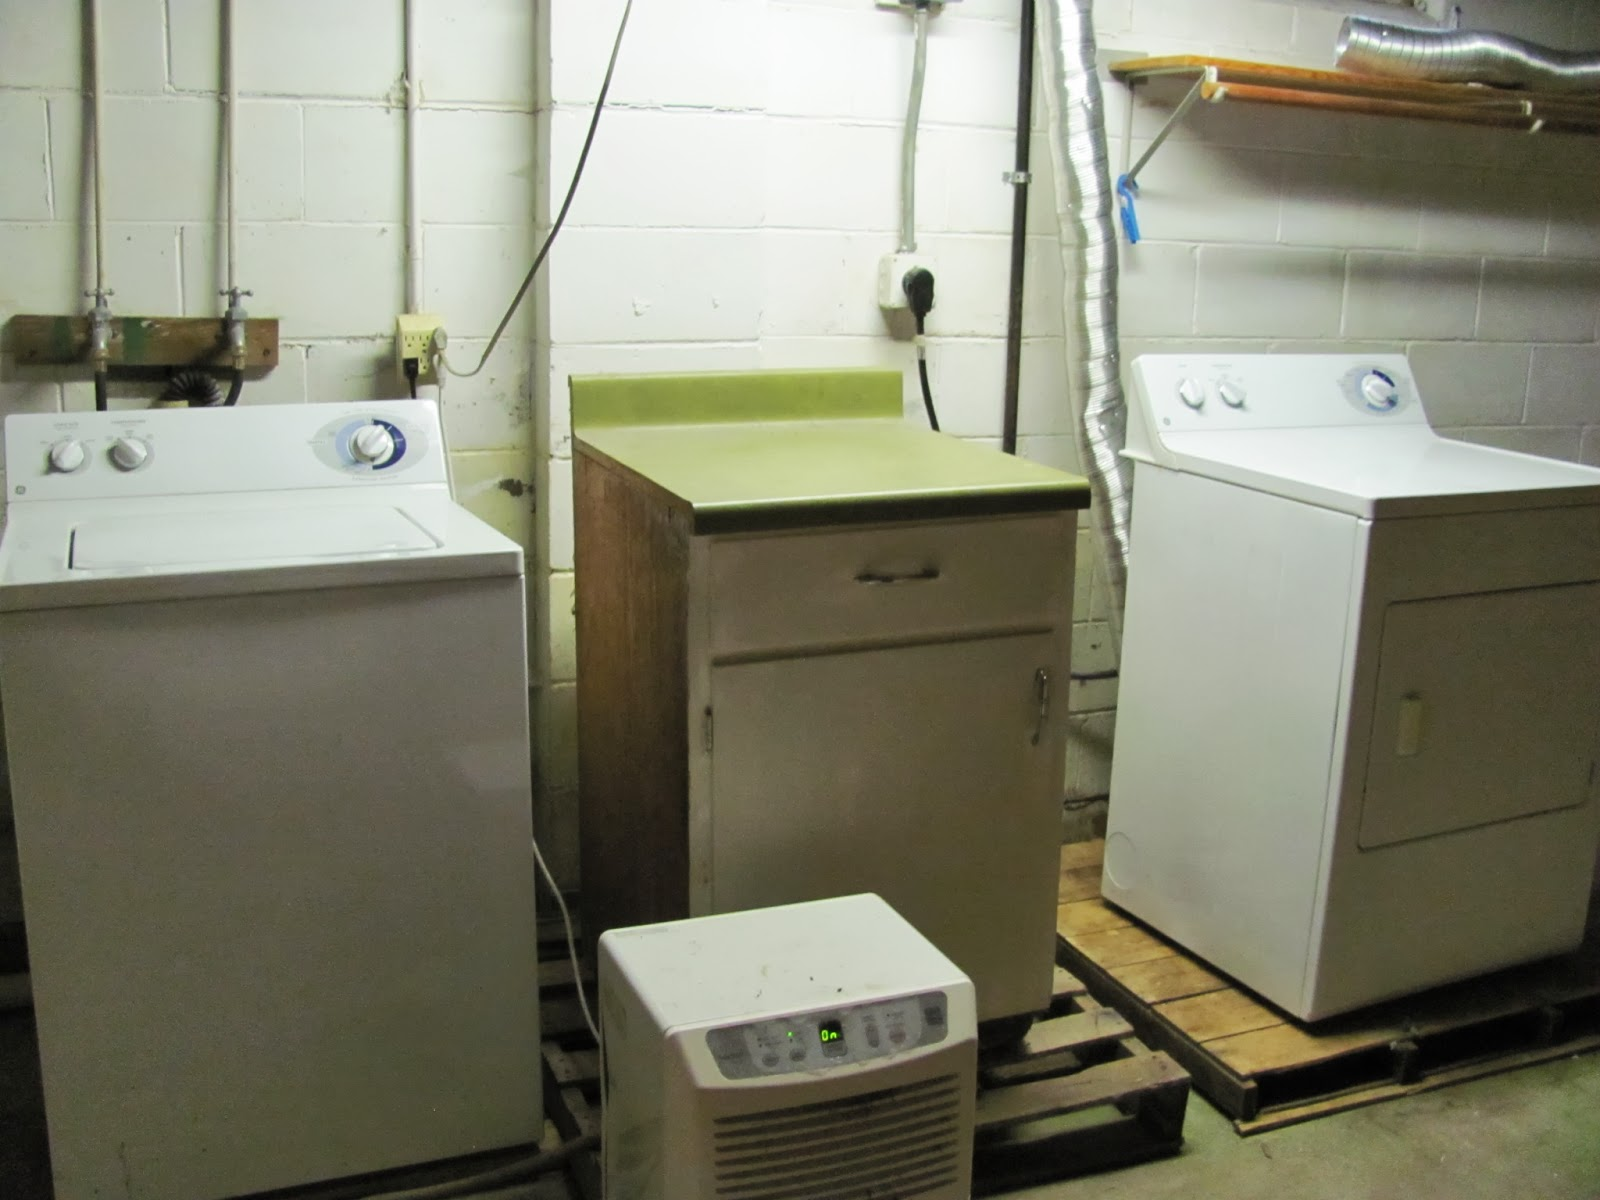 Whirlpool washer and dryer set in the basement